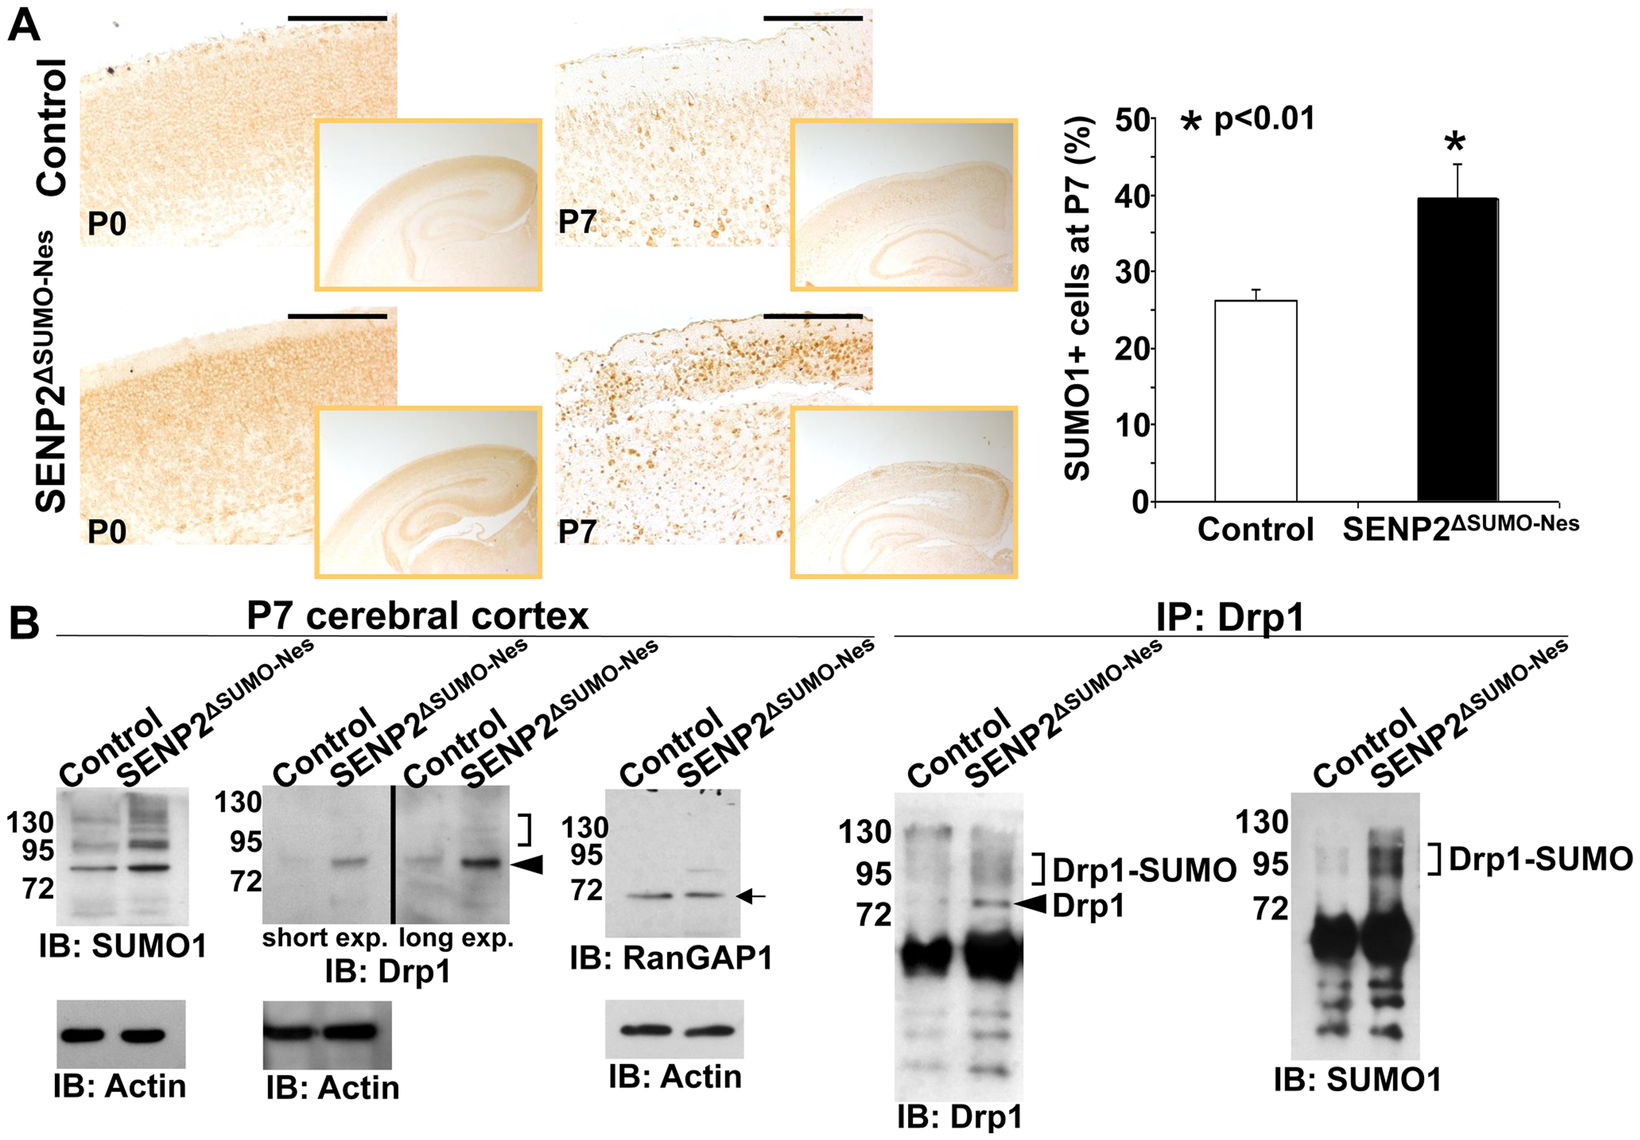 SENP2 deficiency enhances Drp1 sumoylation and stabilization in the developing cerebral cortex.